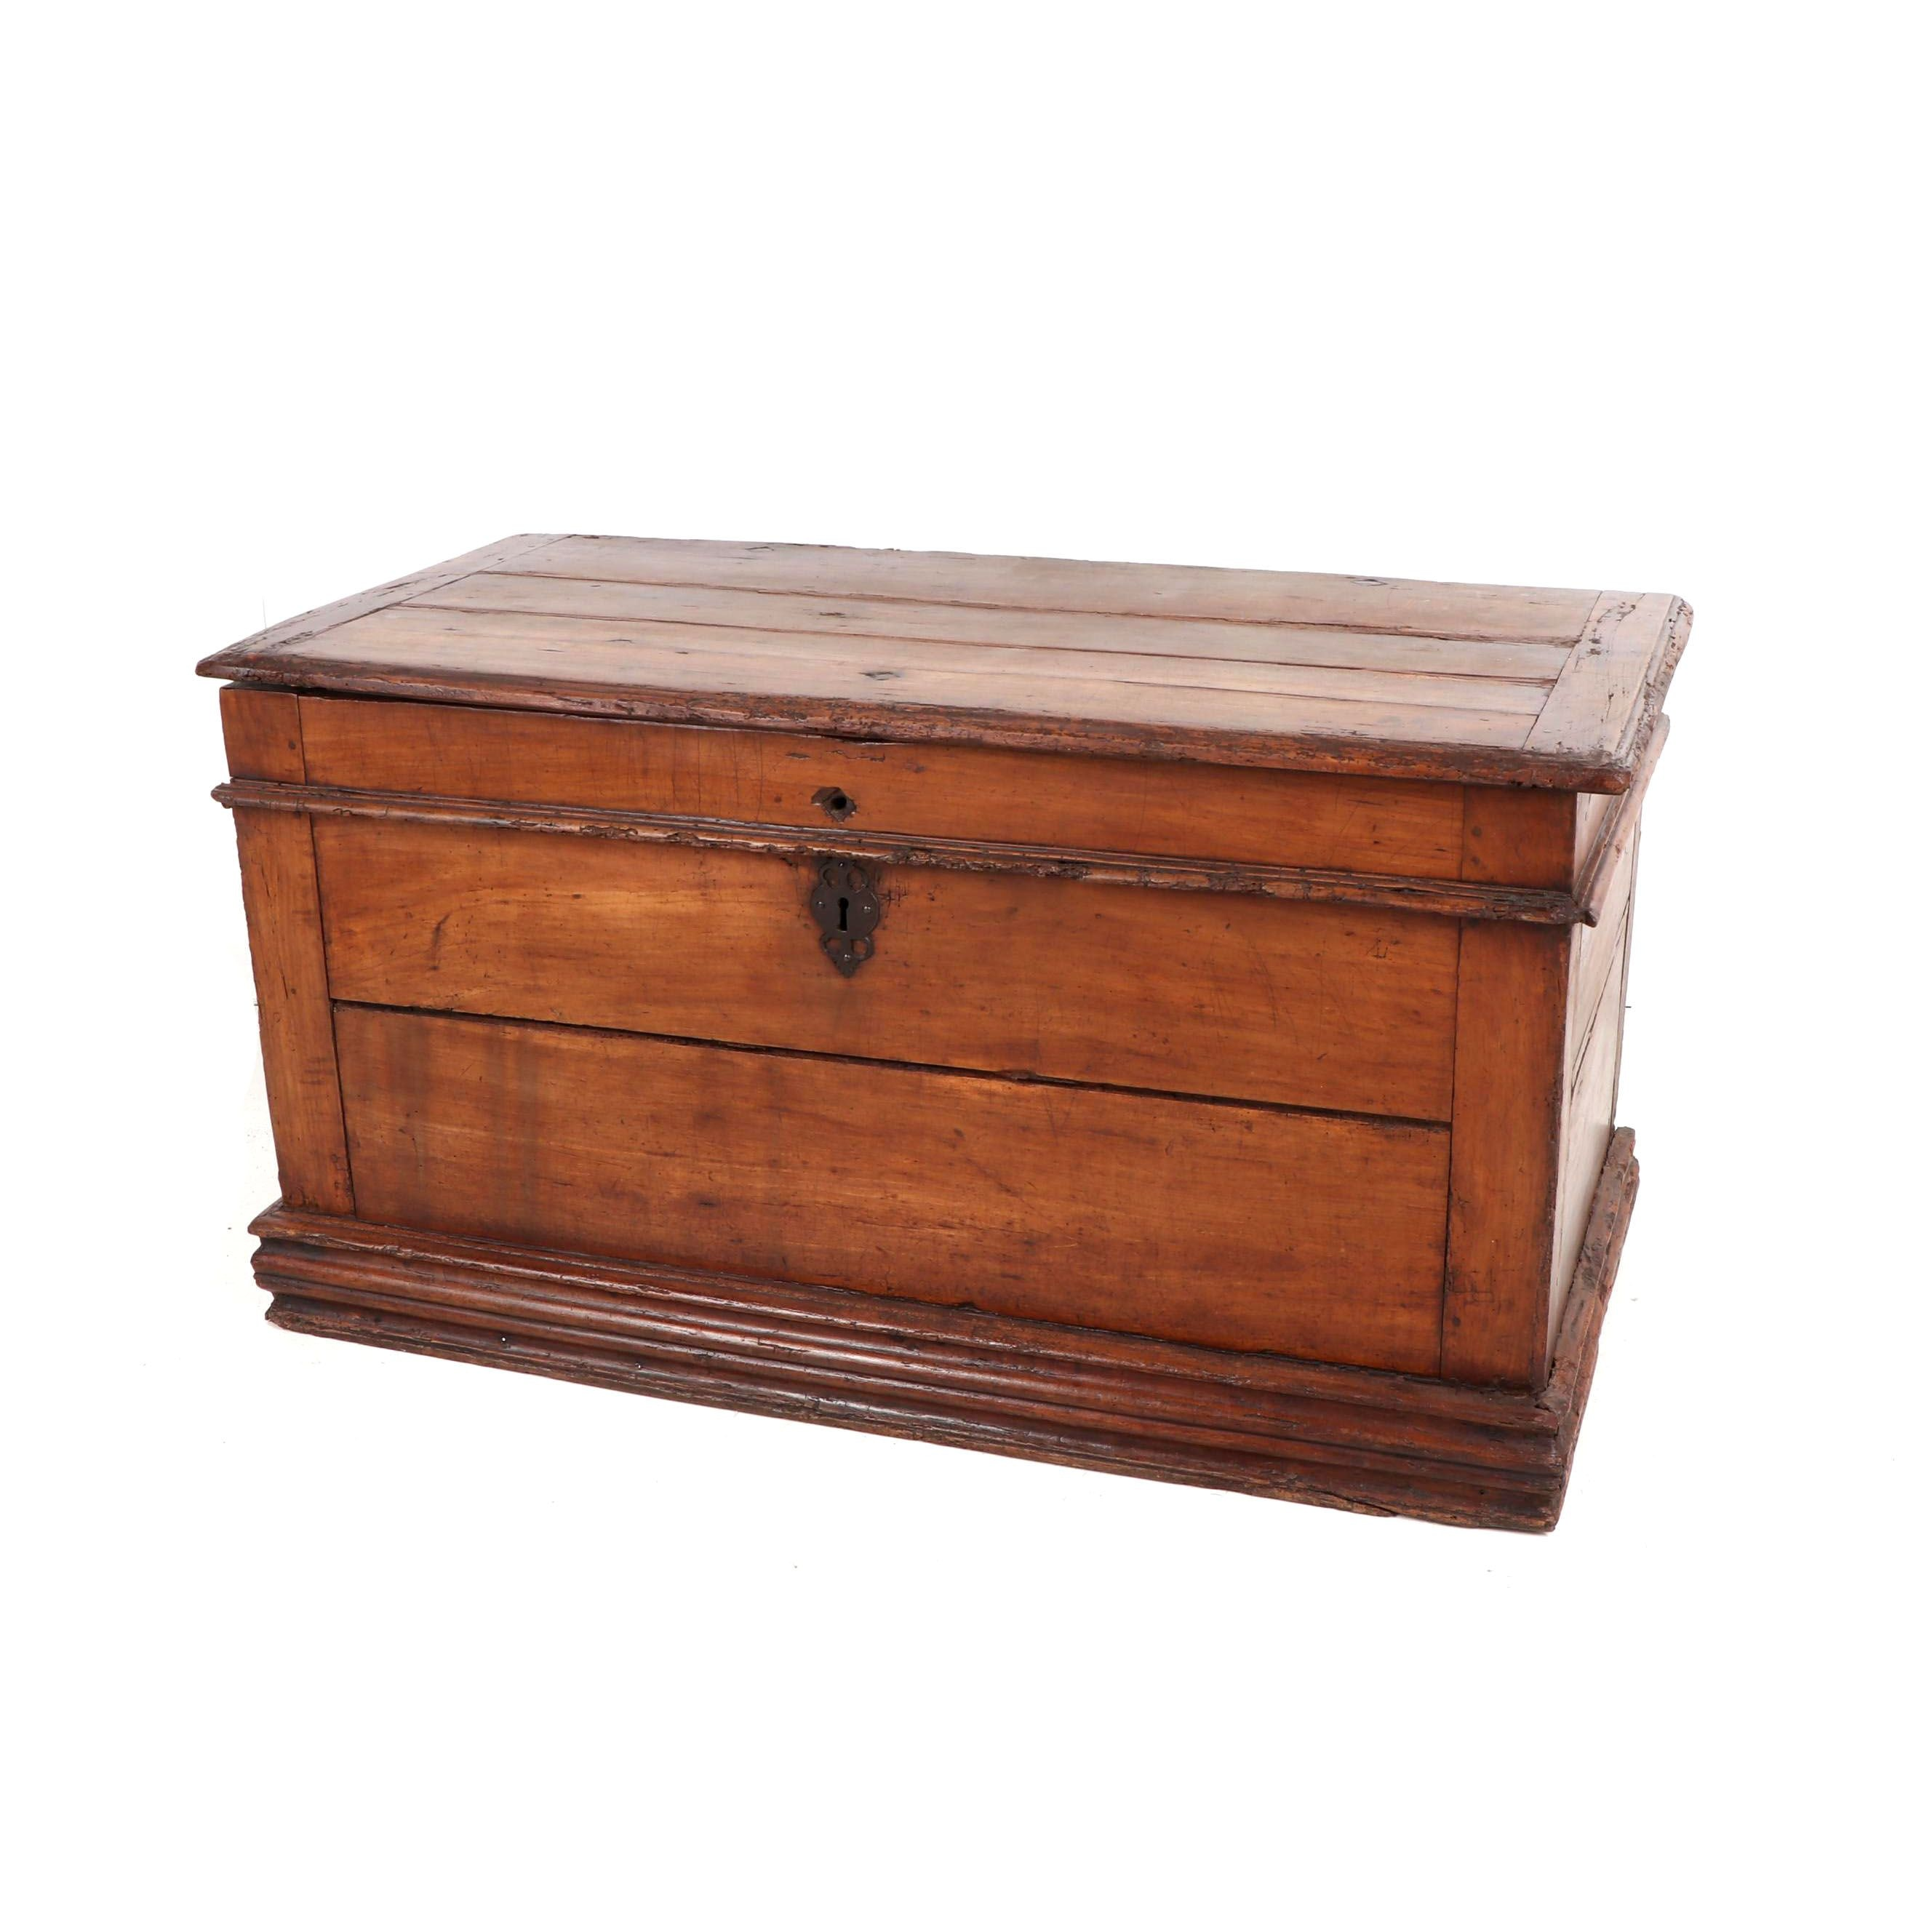 Wood Chest with Till Box, Early 19th Century